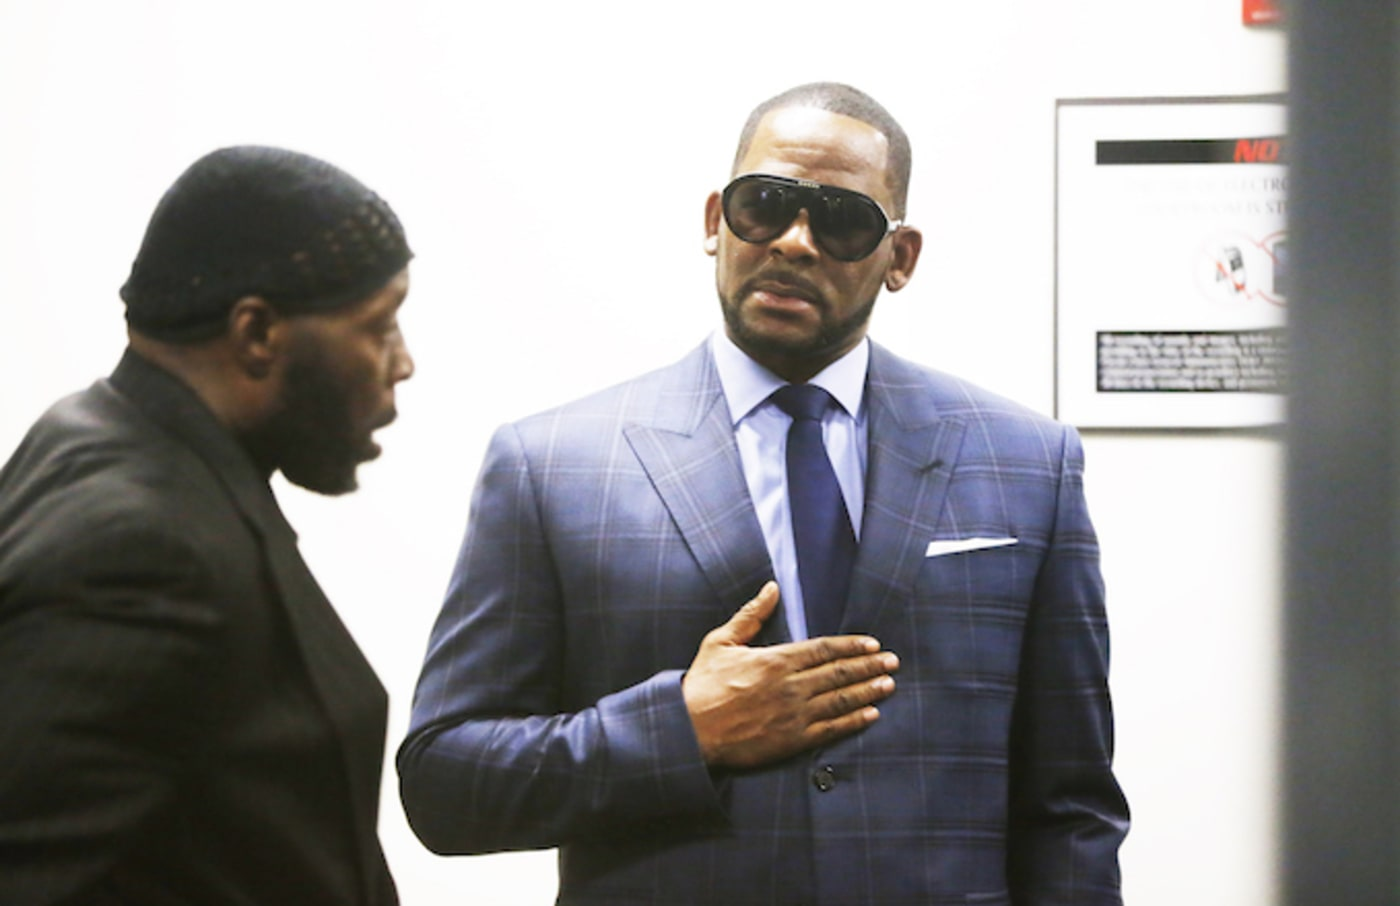 R. Kelly arrives at the Daley Center for his hearing on March 6, 2019 in Chicago, Illinois.